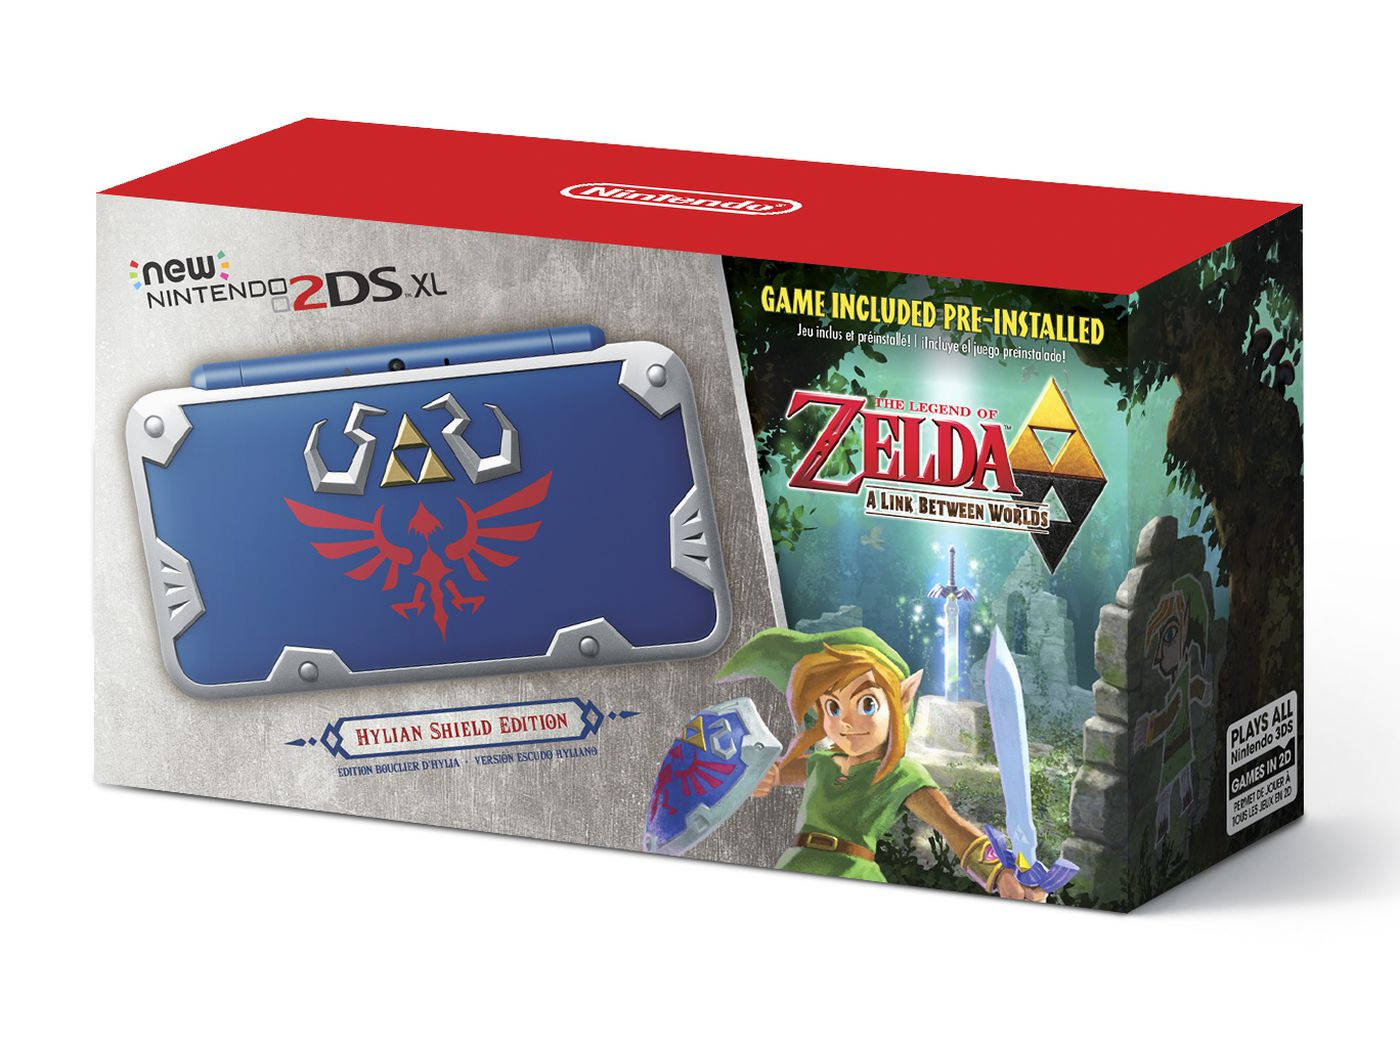 Nintendo Releasing Hylian Shield Themed Zelda Nintendo 2ds Polygon